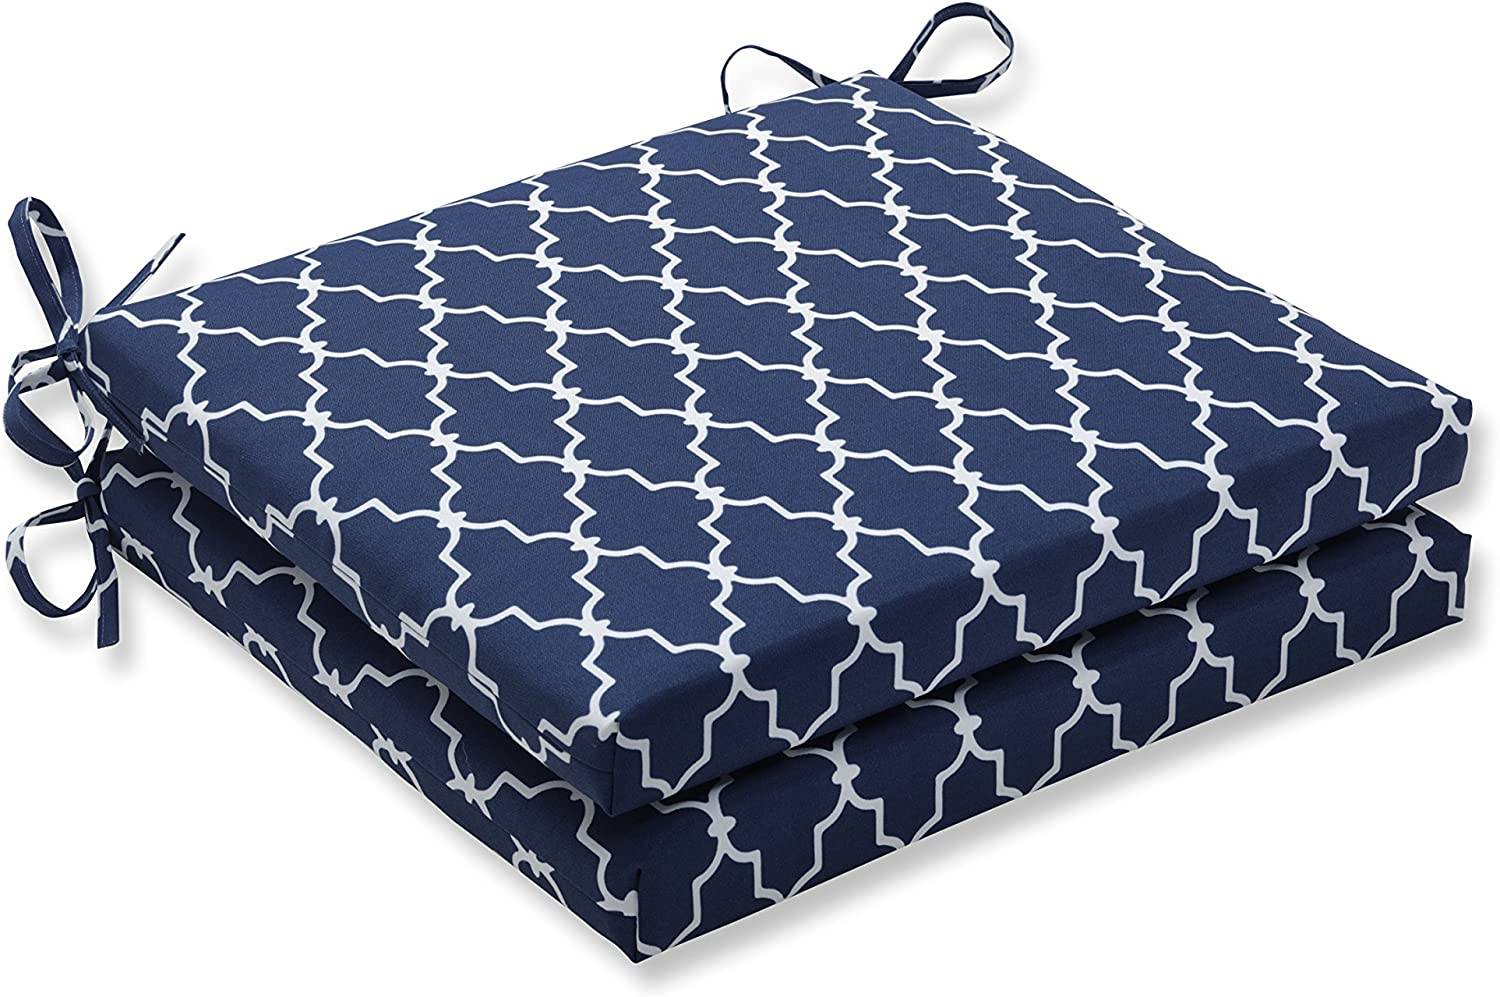 Pillow Perfect Outdoor Indoor Garden Gate Squared Corners Seat Cushion (Set of 2), Navy, bluee, 20 in. L X 20 in. W X 3 in. D